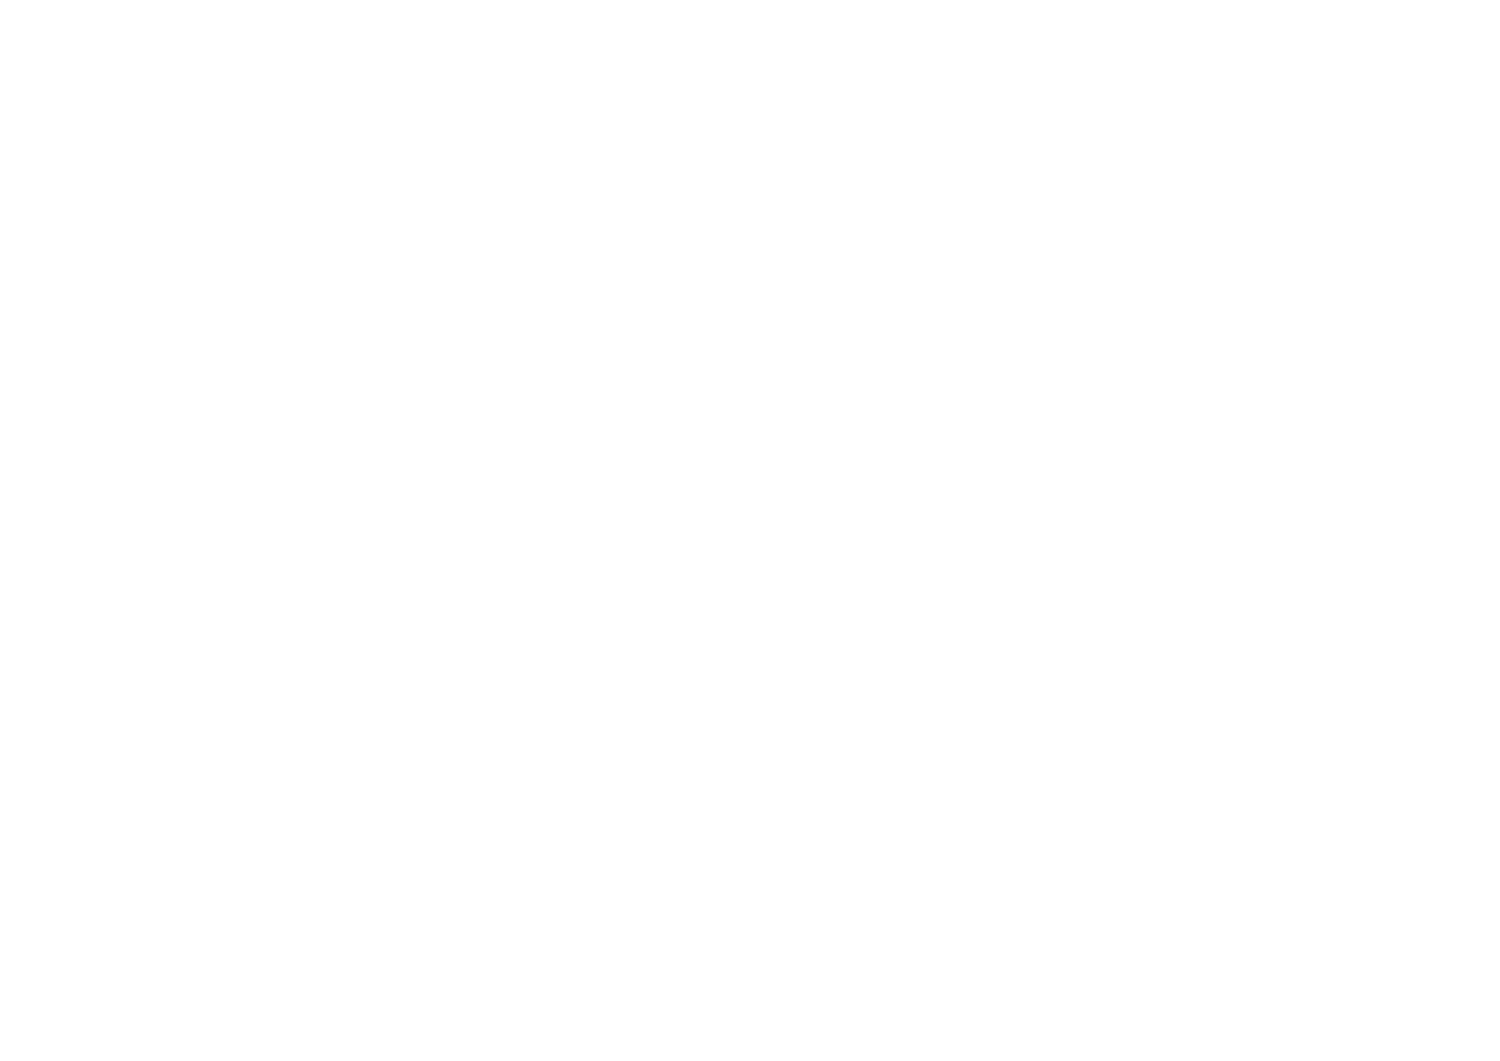 Just Advice Solutions